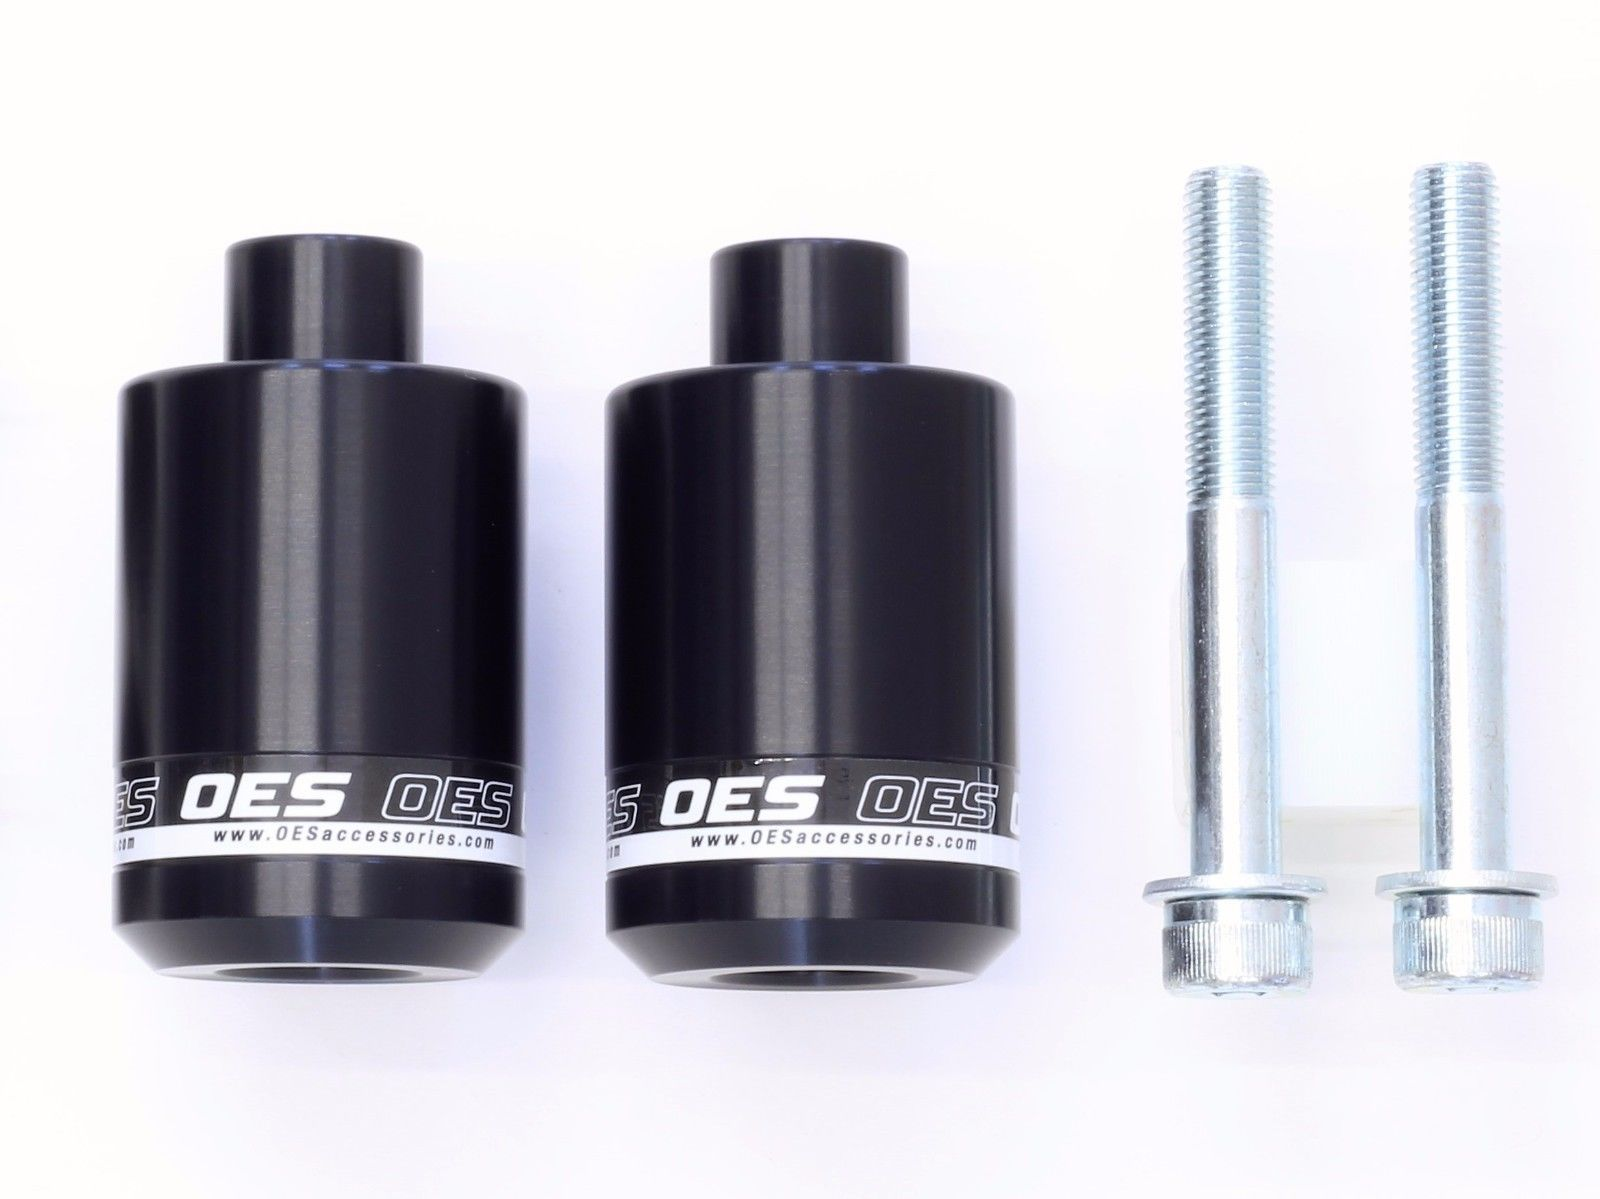 OES Frame Sliders 06 07 08 09 2010 11 2012 2013 2014 2015 Yamaha FZ1 FZ-1 No Cut